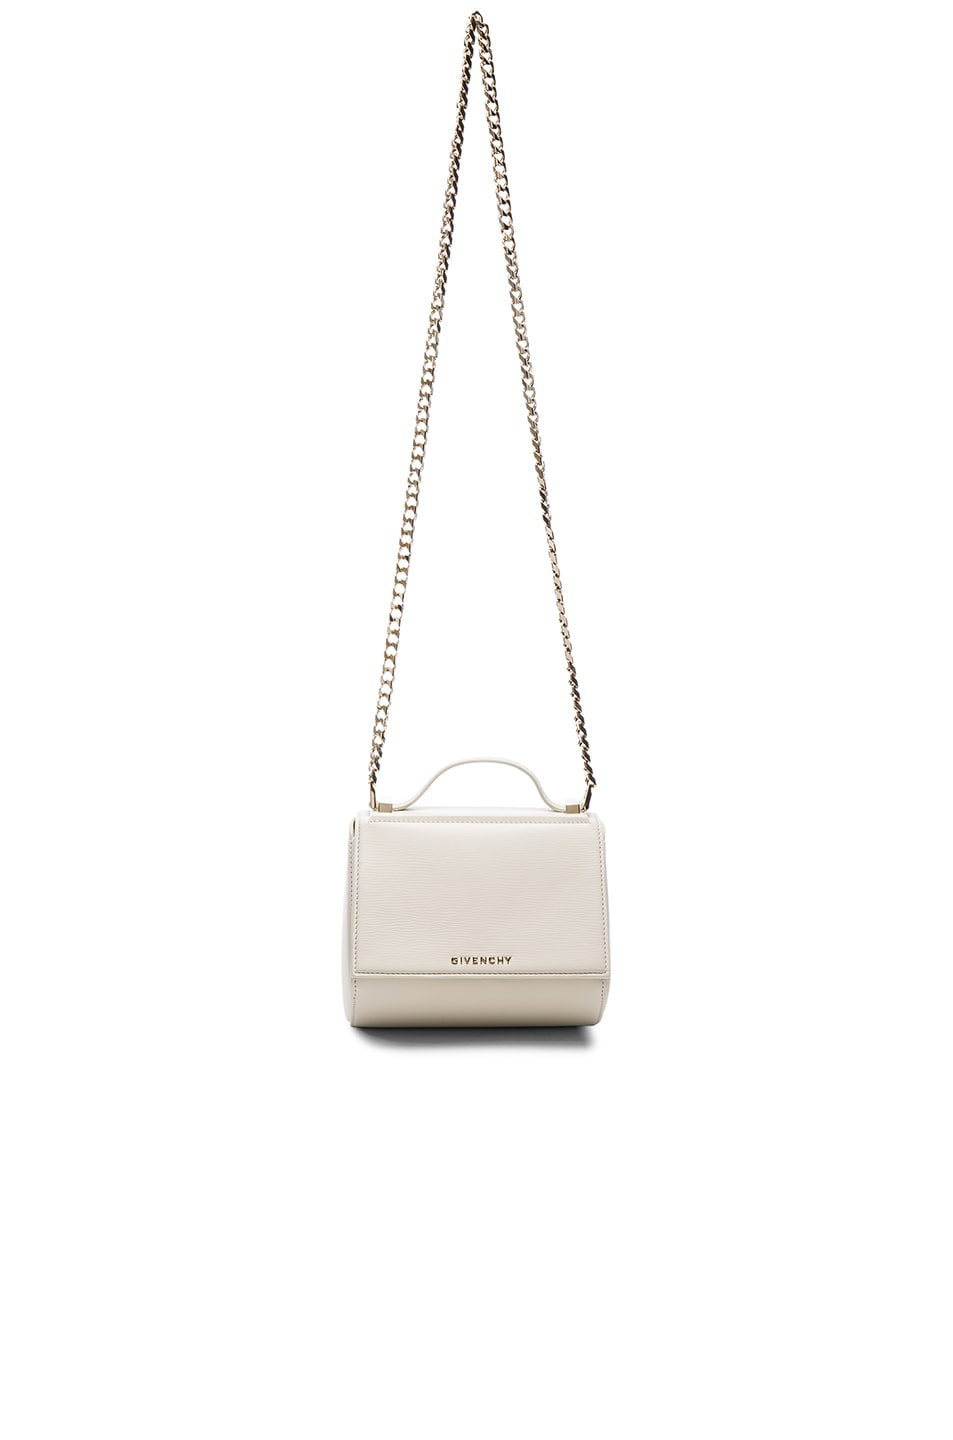 Image 1 of Givenchy Mini Chain Pandora Box in Ivory adc859e34c335